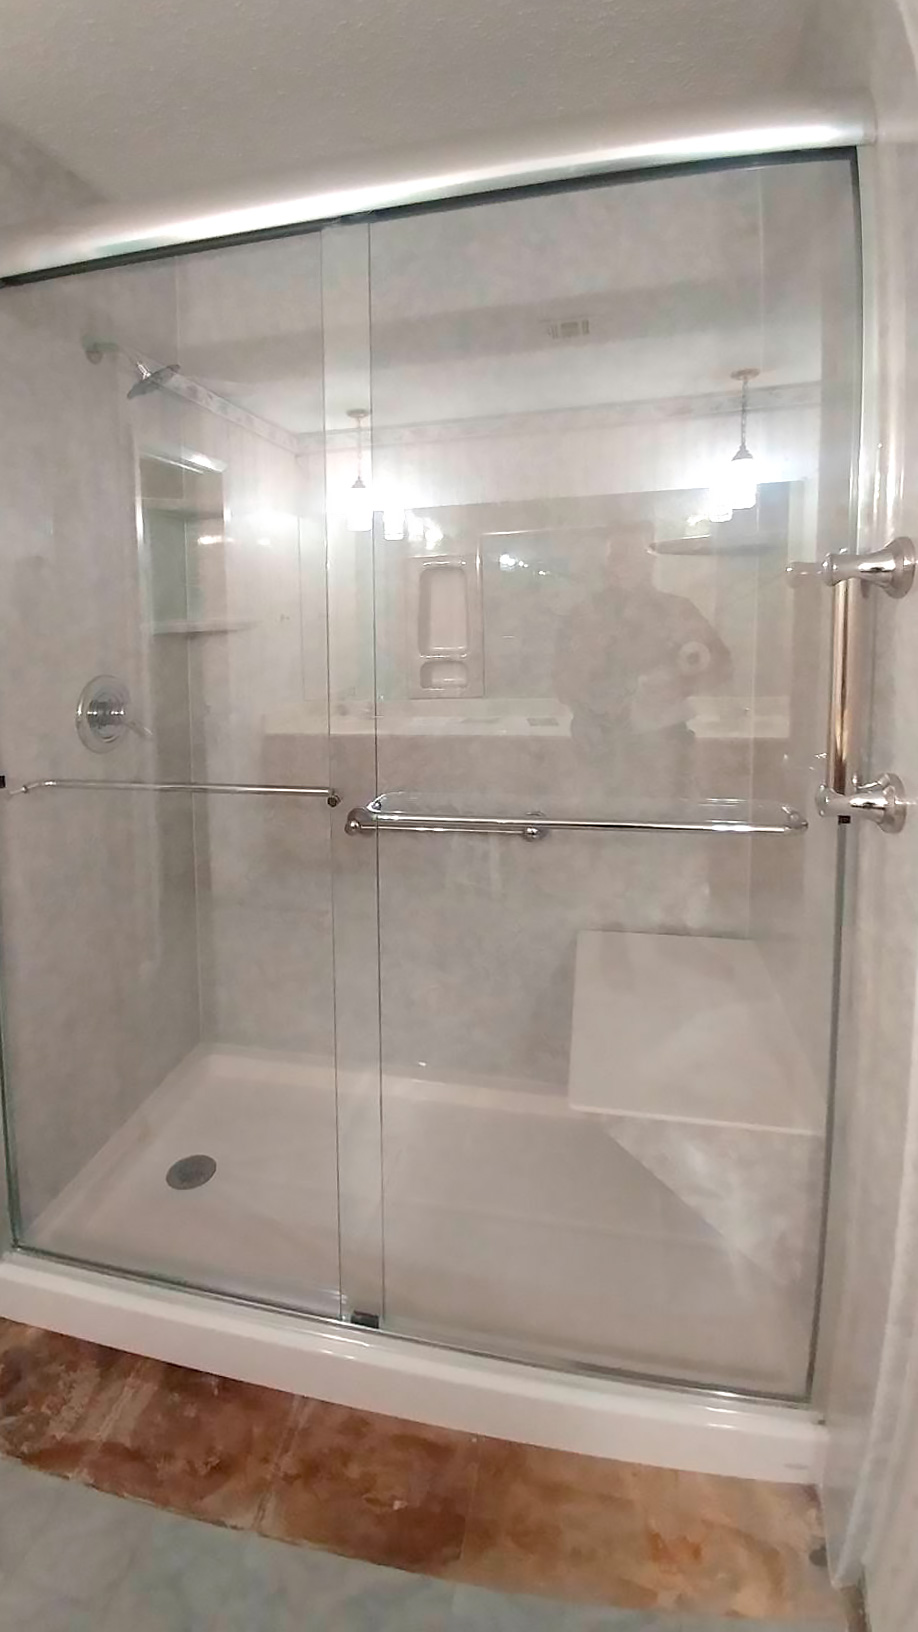 DK Sliding Shower Door